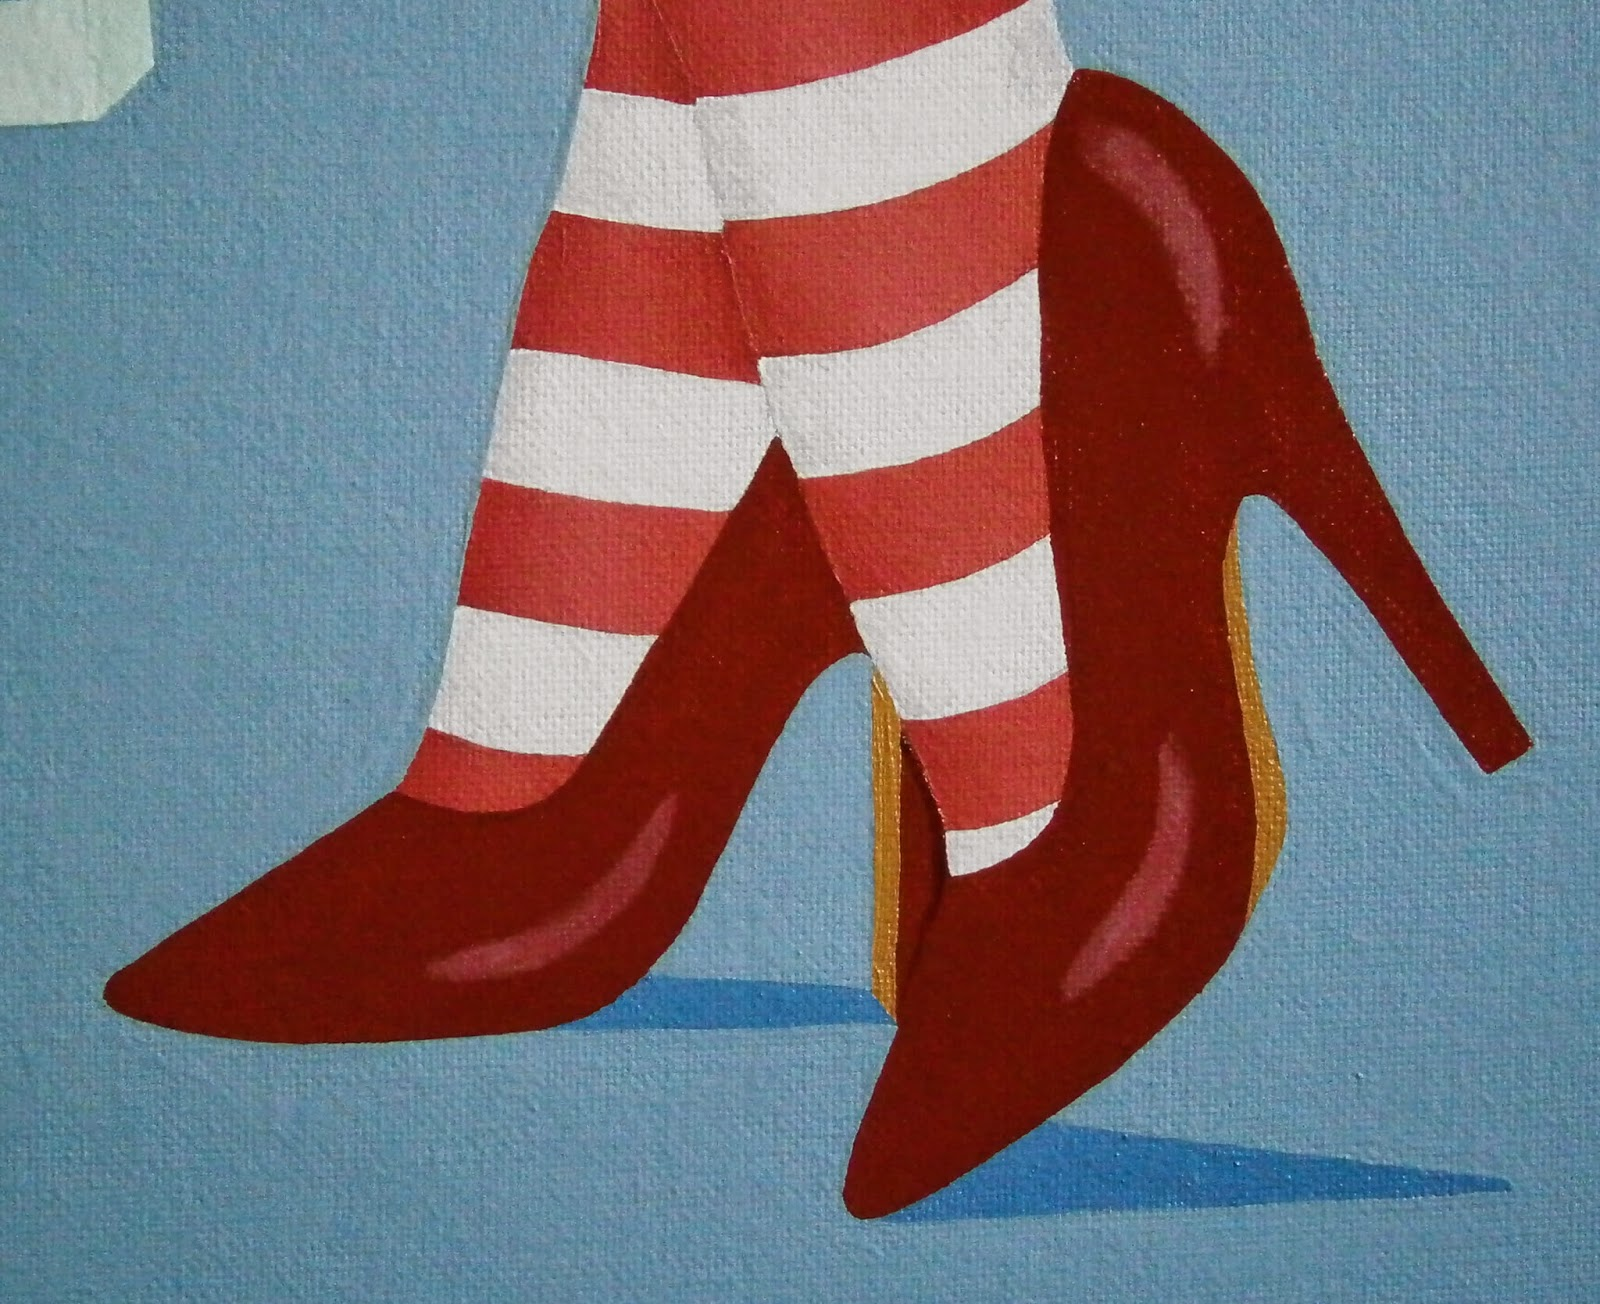 Red Christmas heels painted by L. E. Gav Thorpe